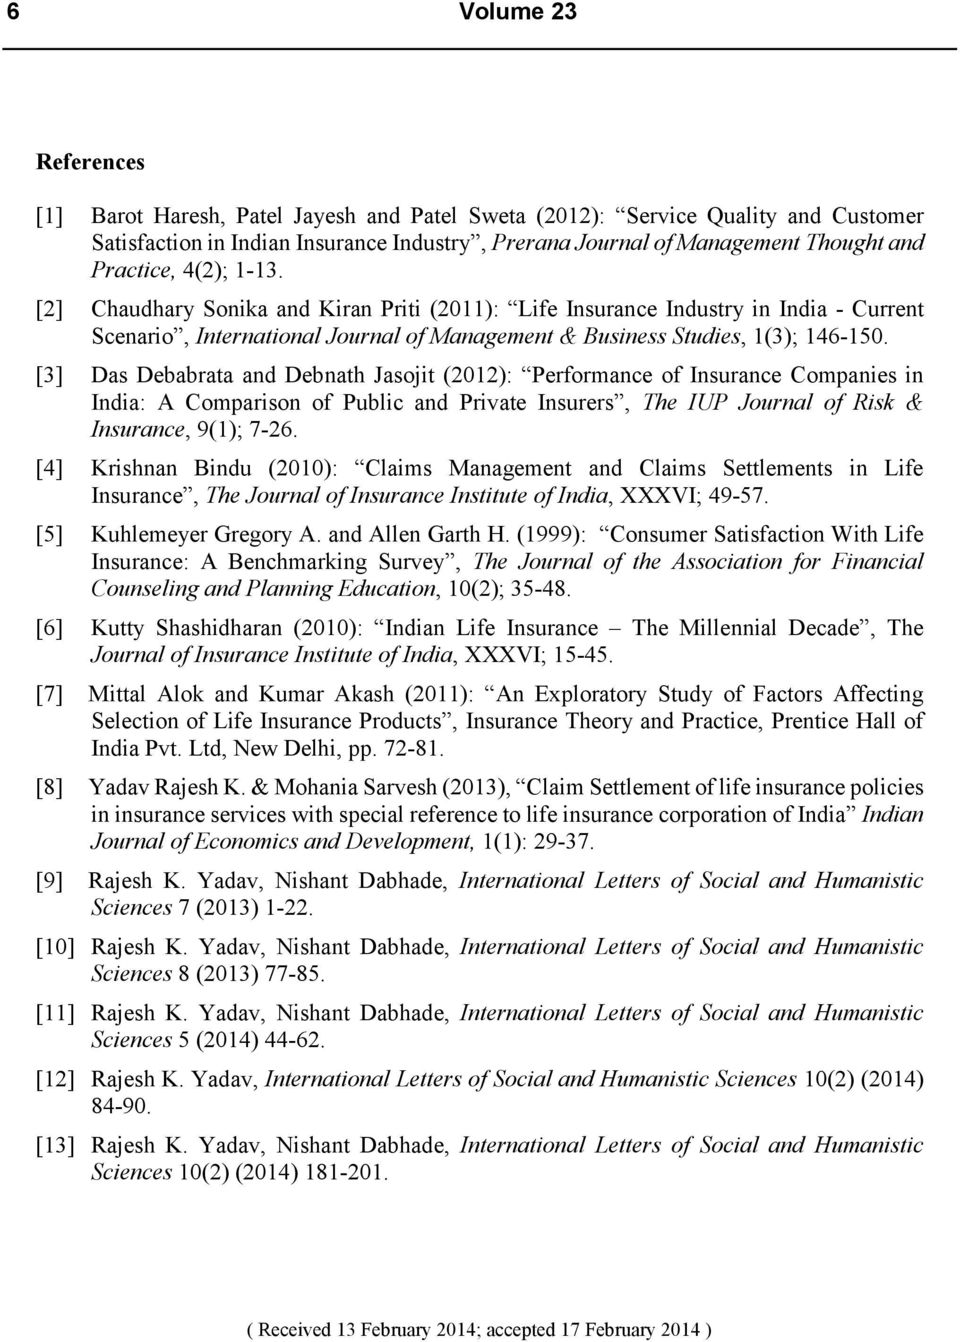 [3] Das Debabrata and Debnath Jasojit (2012): Performance of Insurance Companies in India: A Comparison of Public and Private Insurers, The IUP Journal of Risk & Insurance, 9(1); 7-26.